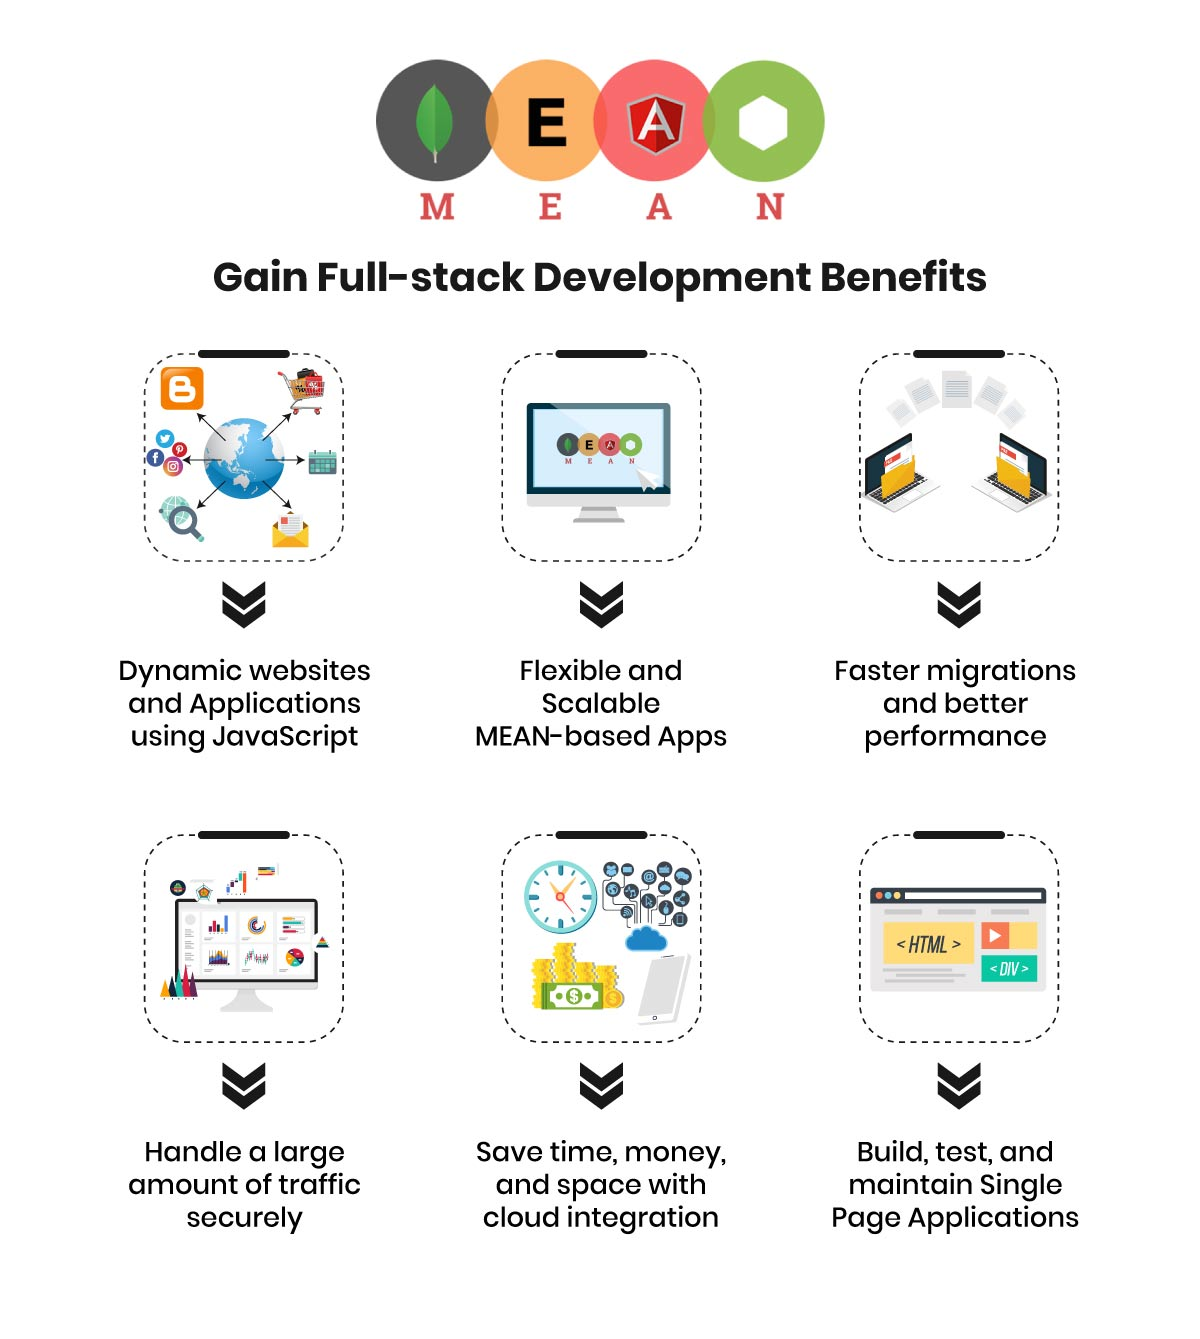 Gain Full-stack Development Benefits